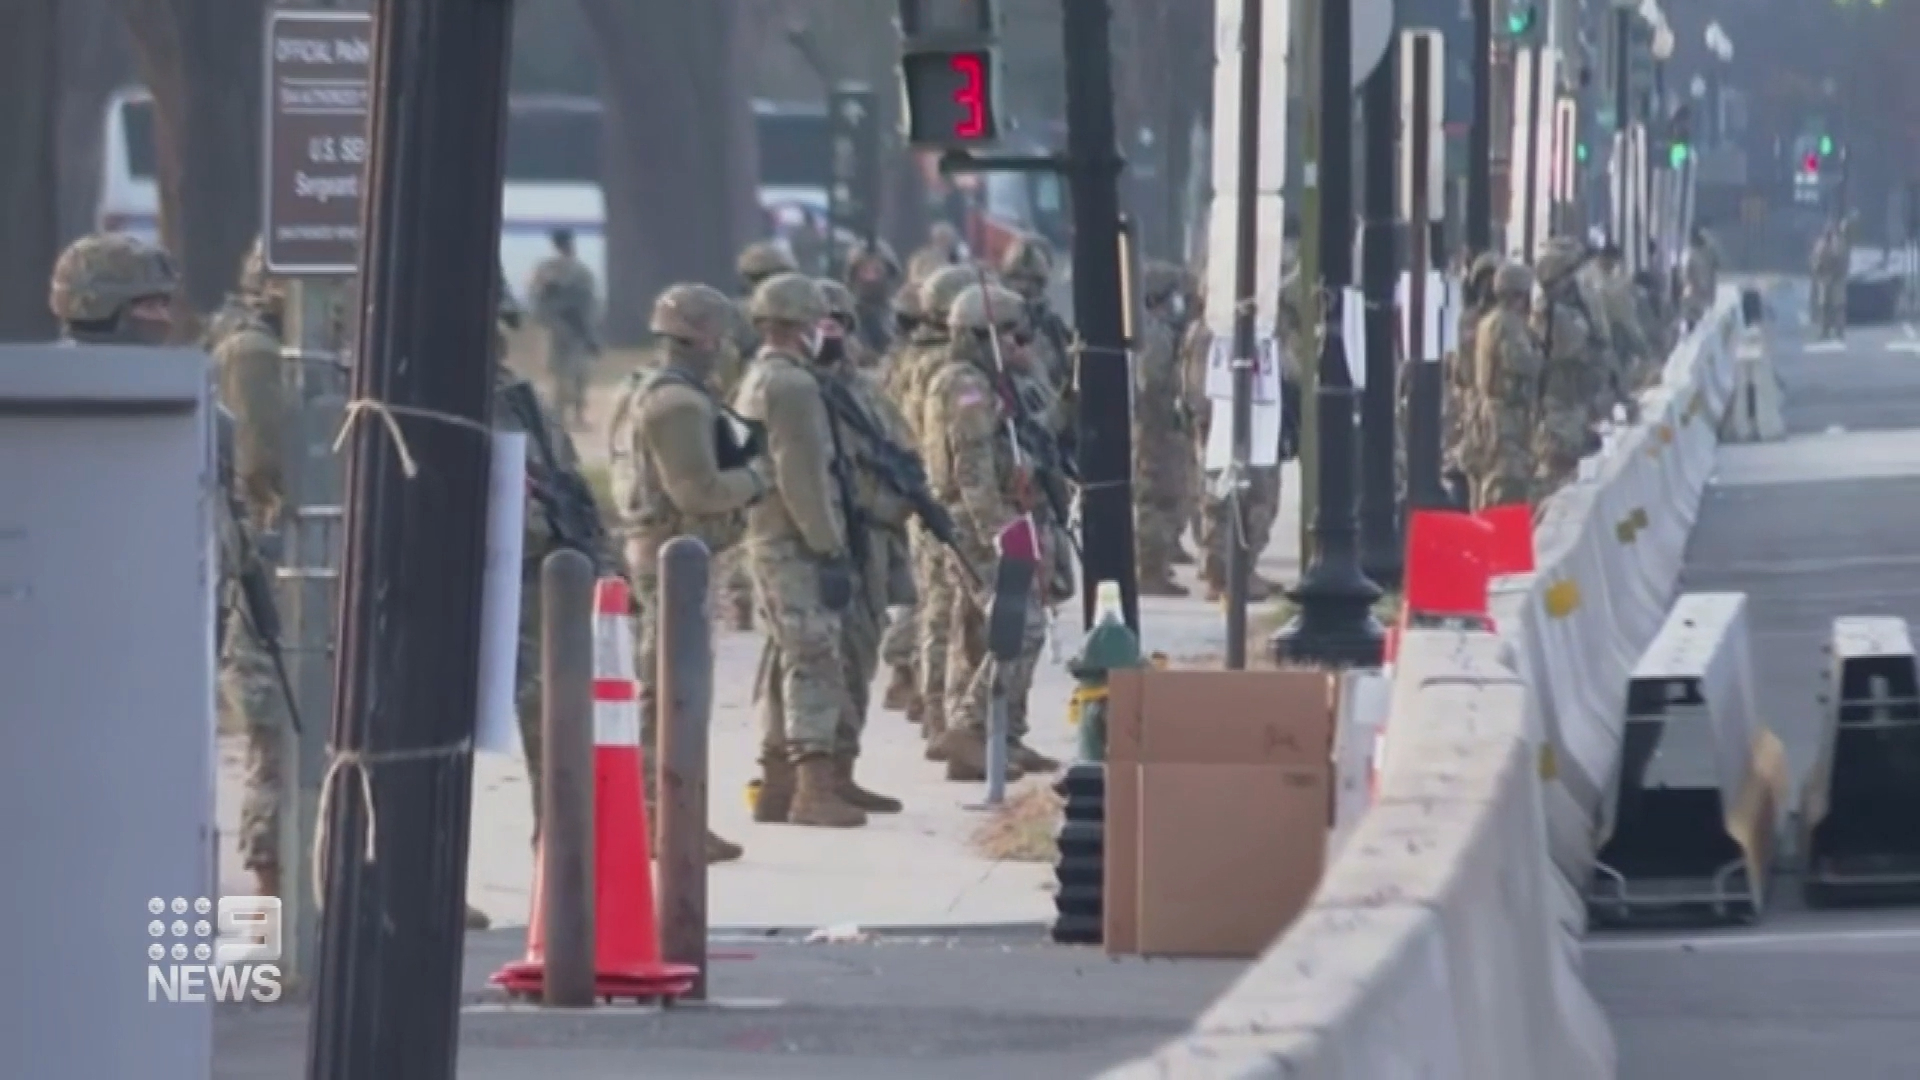 Fears of attack from inside the National Guard at Biden inauguration